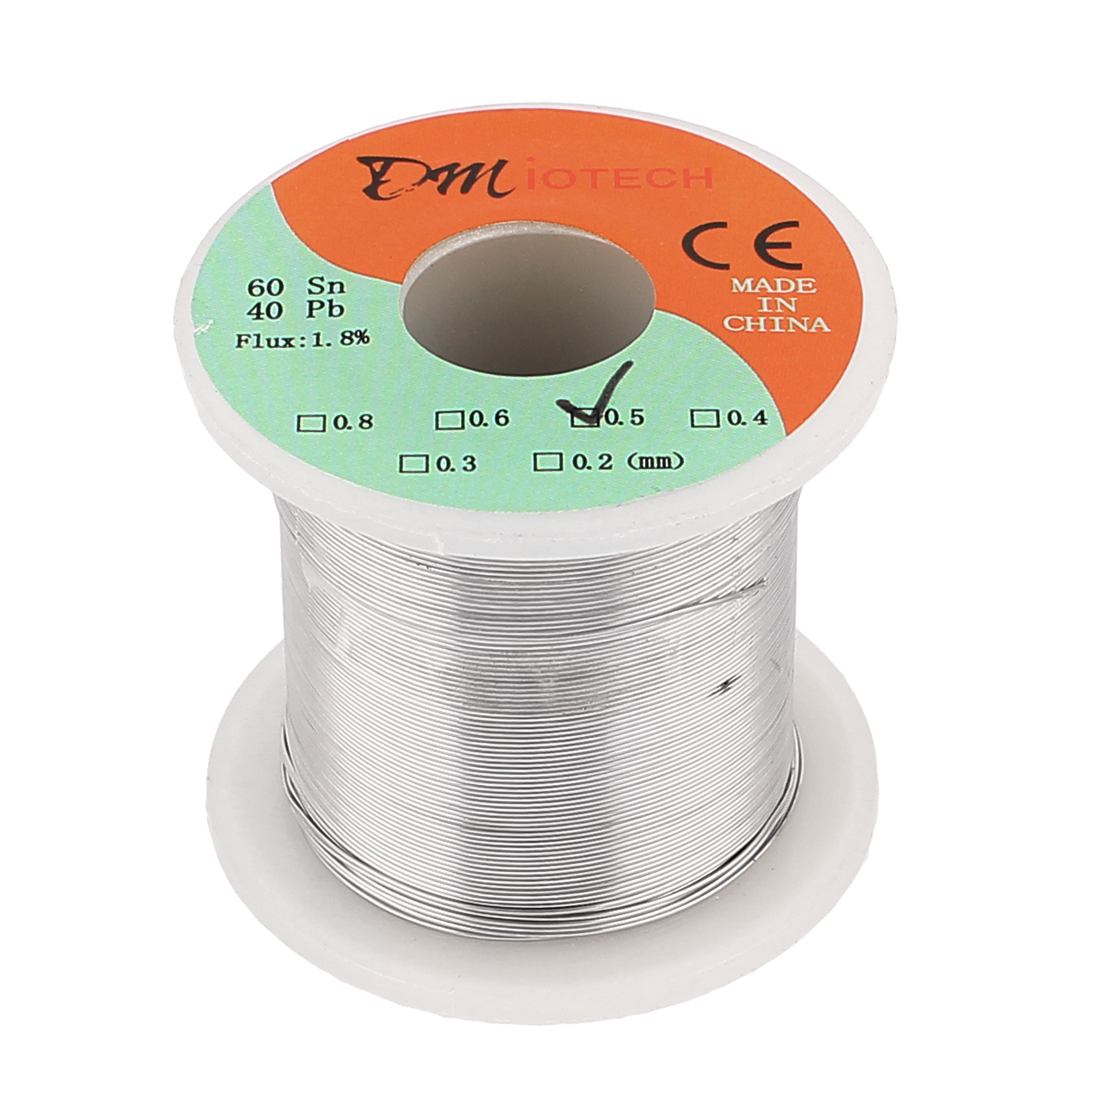 0.5mm 200G 60/40 Rosin Core Tin Lead Roll Soldering Solder Wire